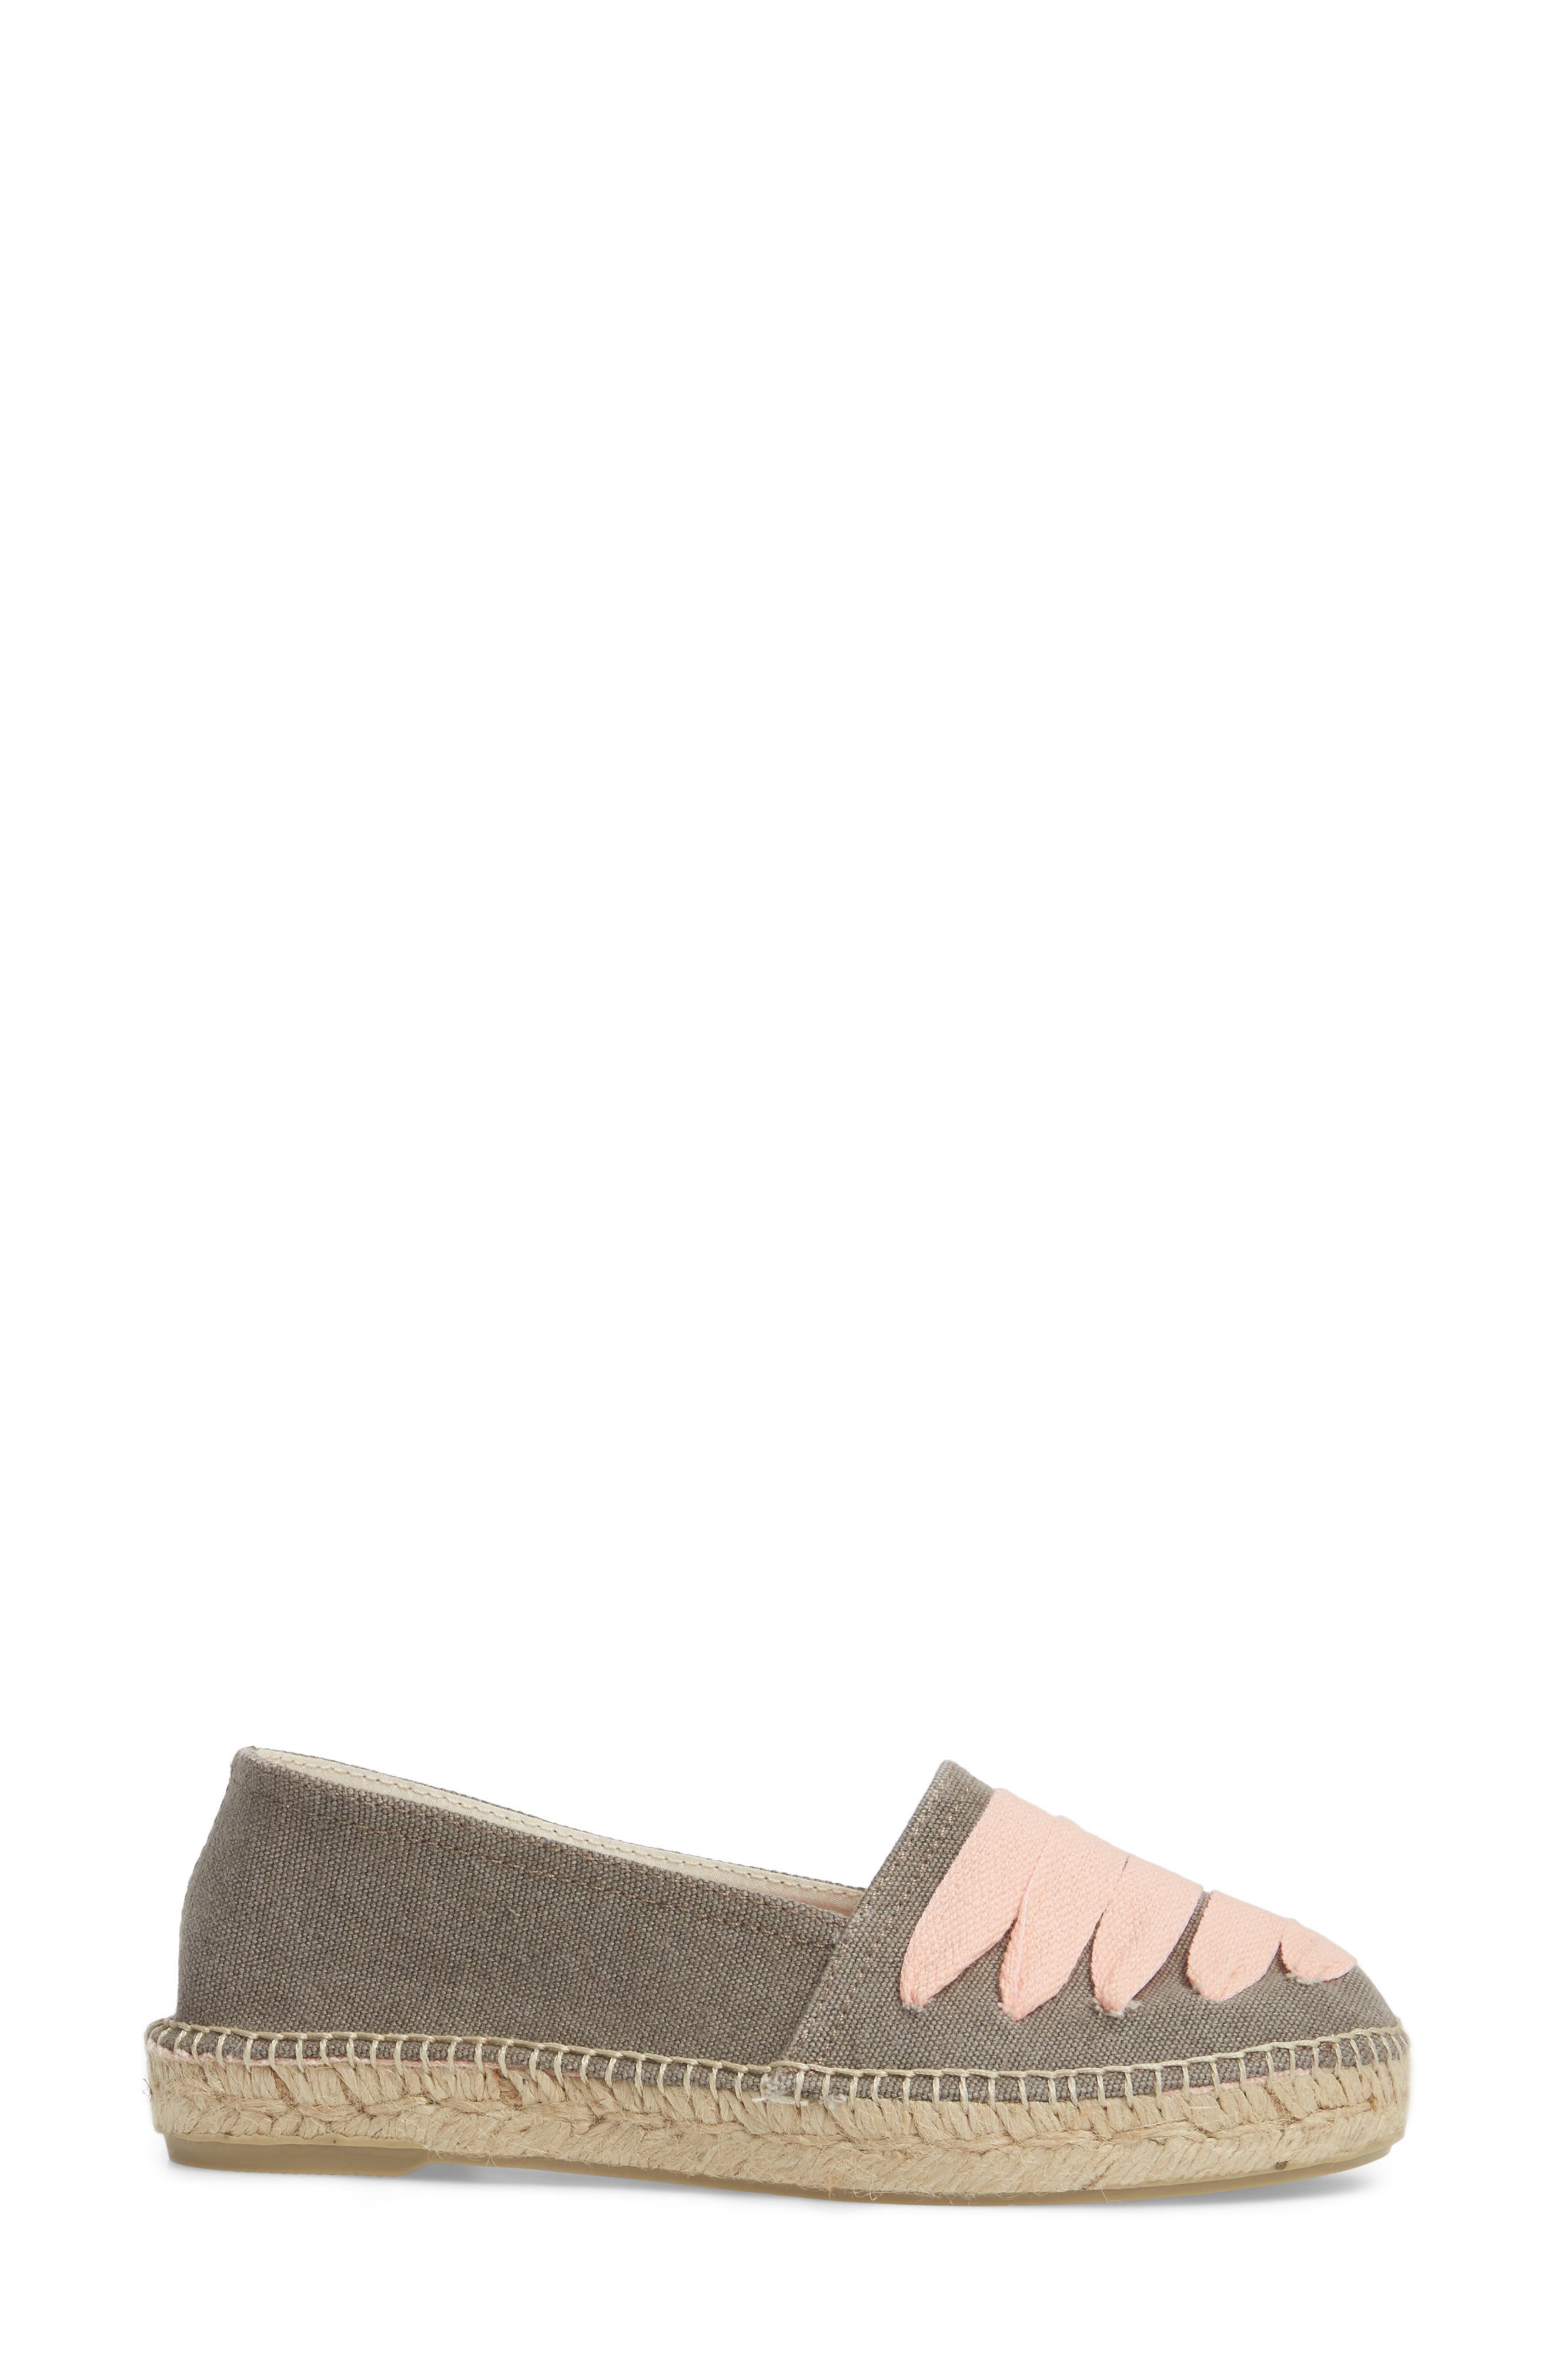 Rubi Espadrille Flat,                             Alternate thumbnail 3, color,                             Gris/ Rosa Fabric